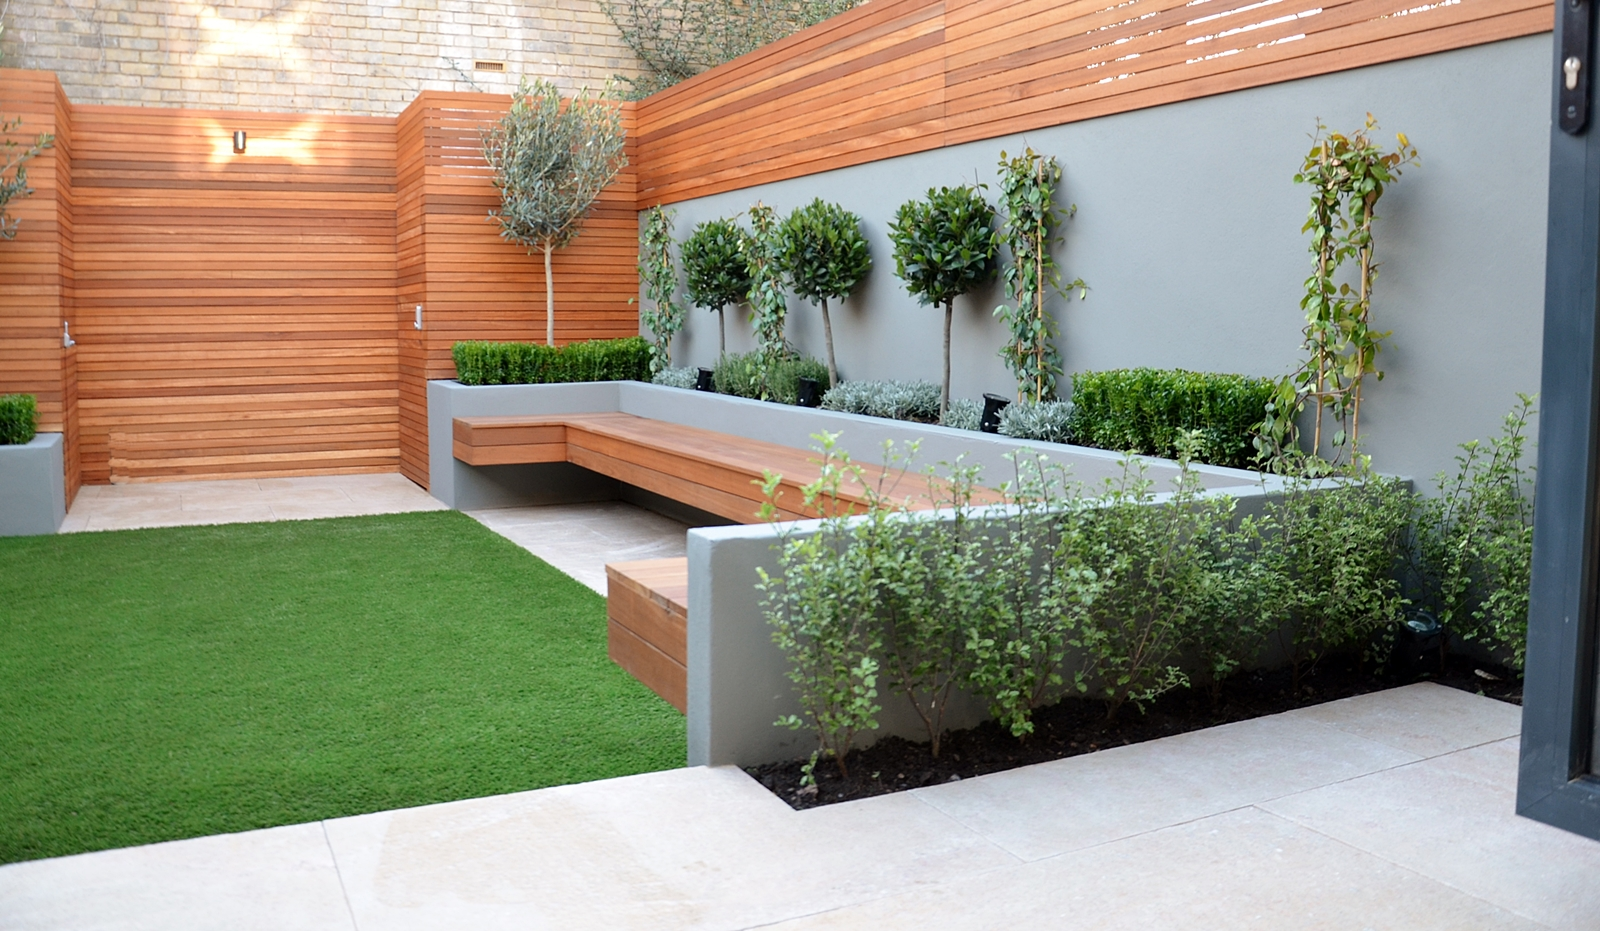 Clapham and london garden design 2015 for Garden design plans uk